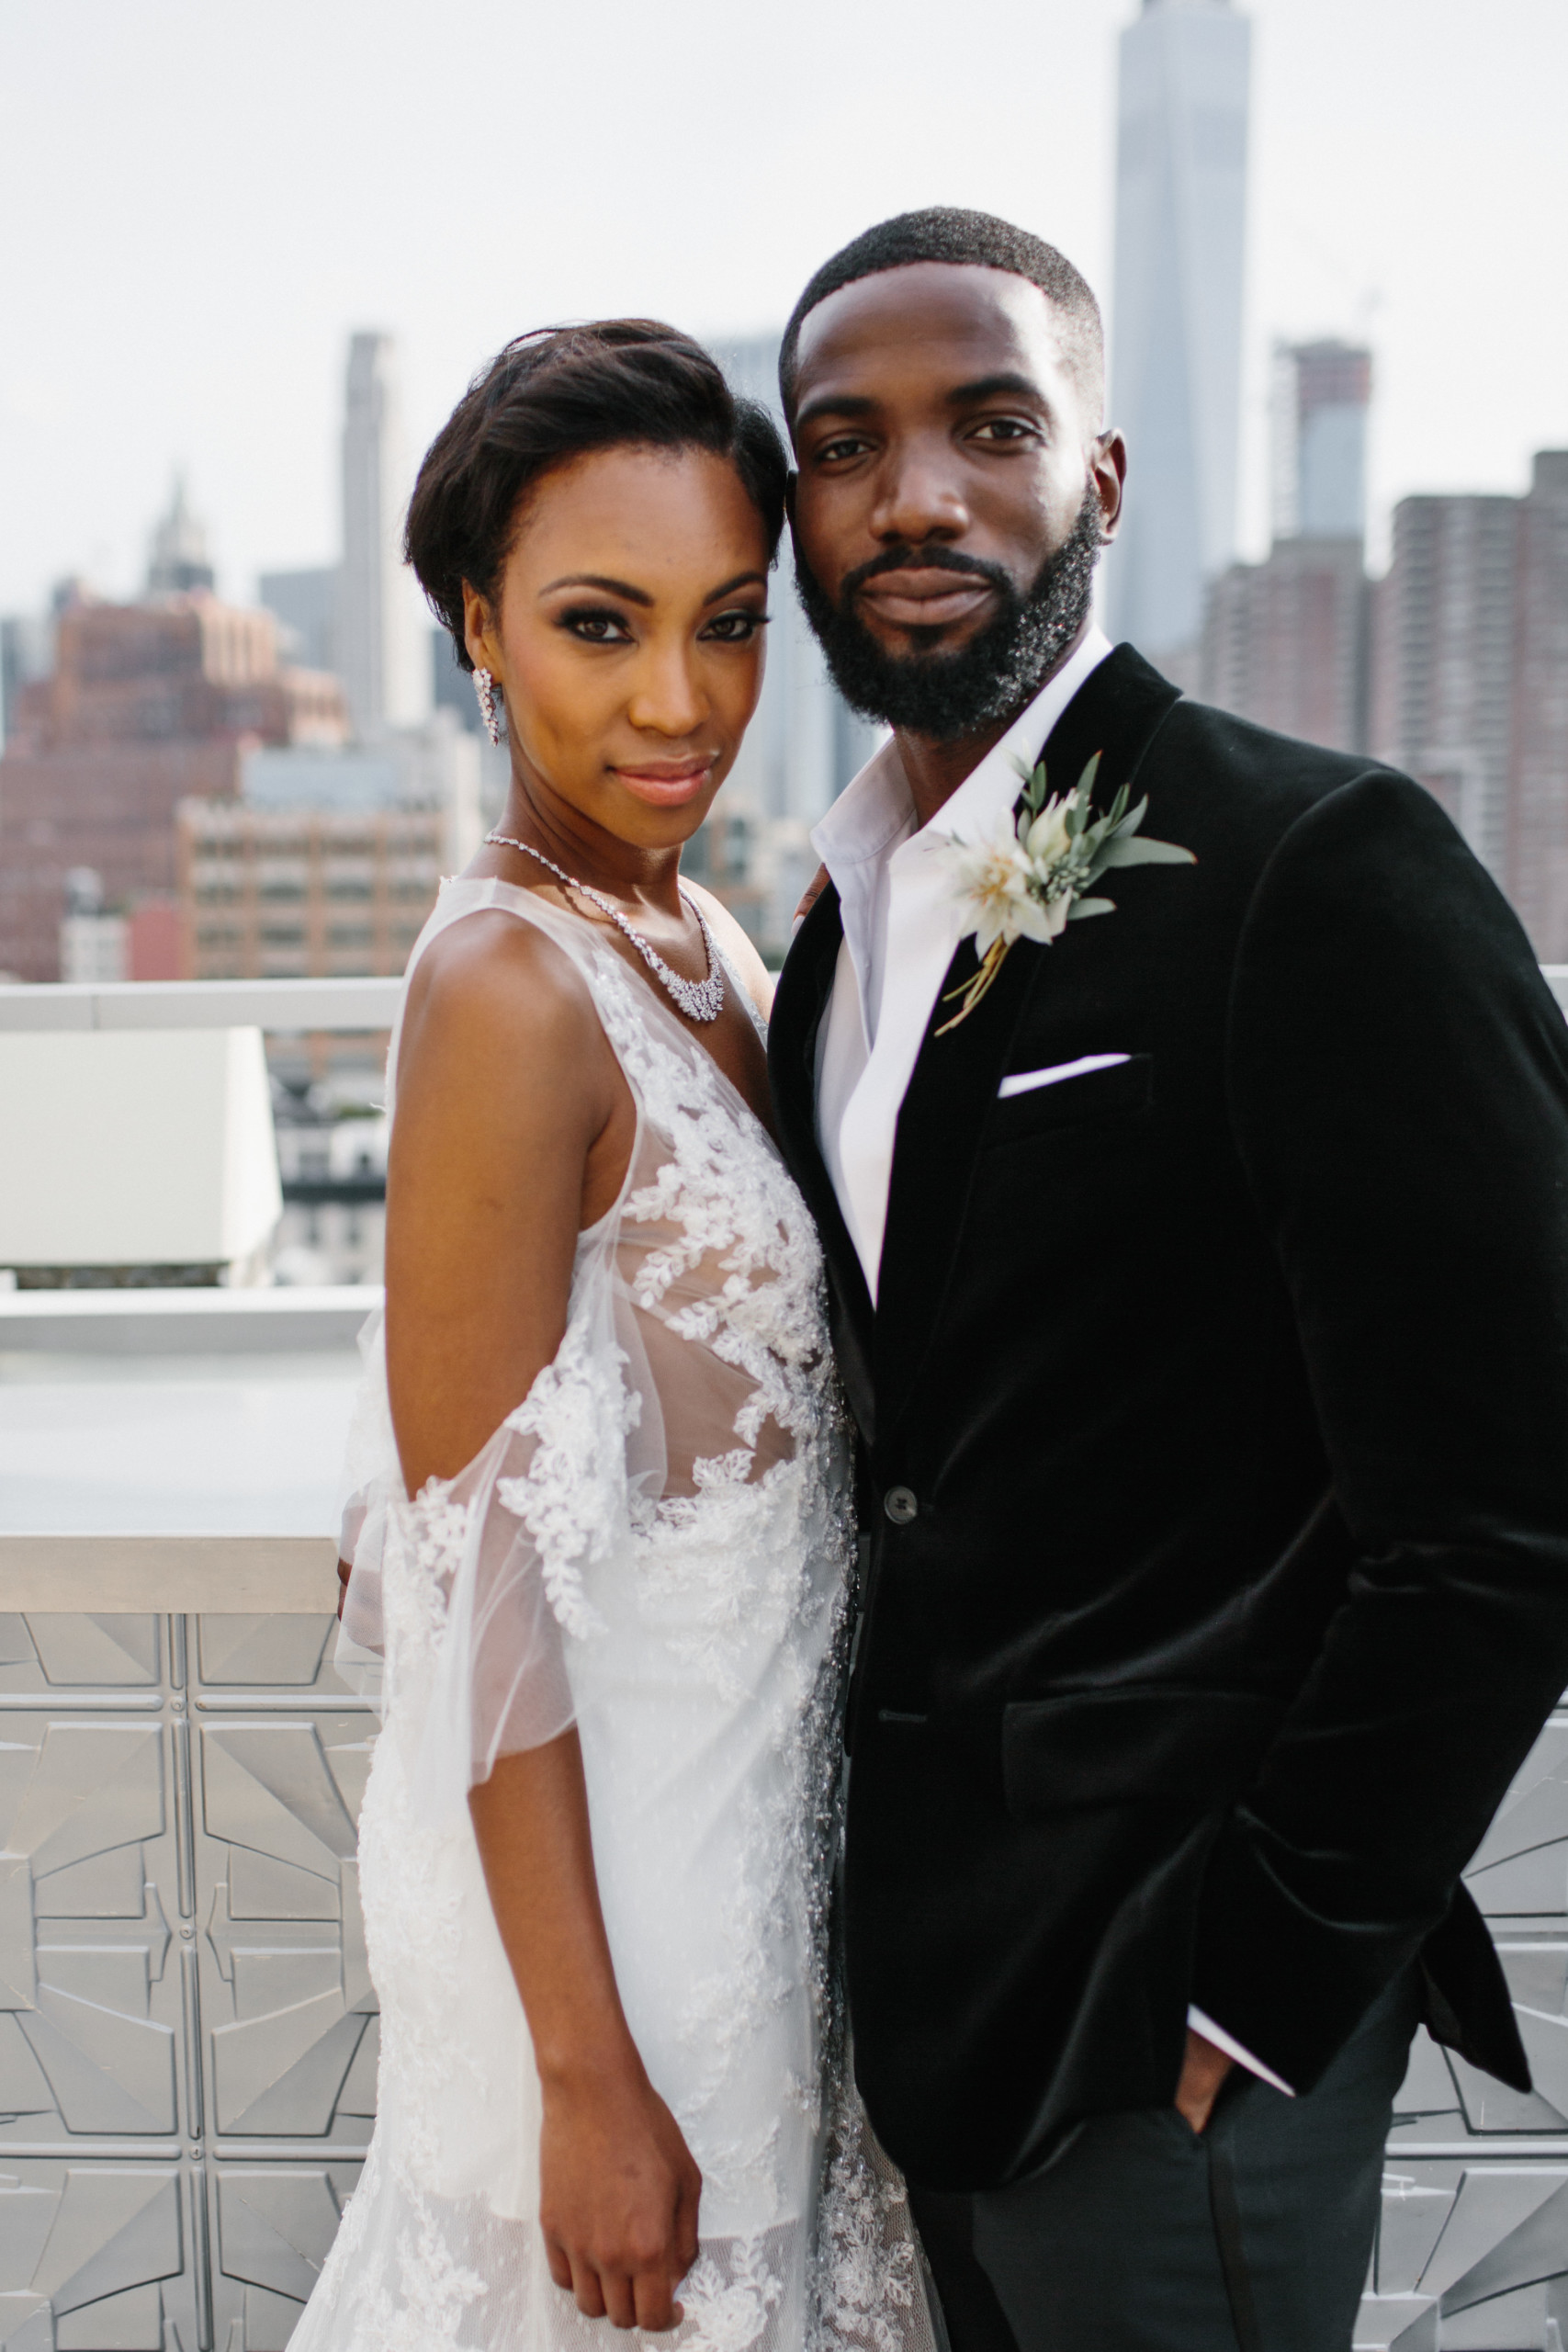 Chic bride in white dress with open shoulders, defined eyes and brows, glowing skin, poses with her groom at Tribeca Rooftop in New York City